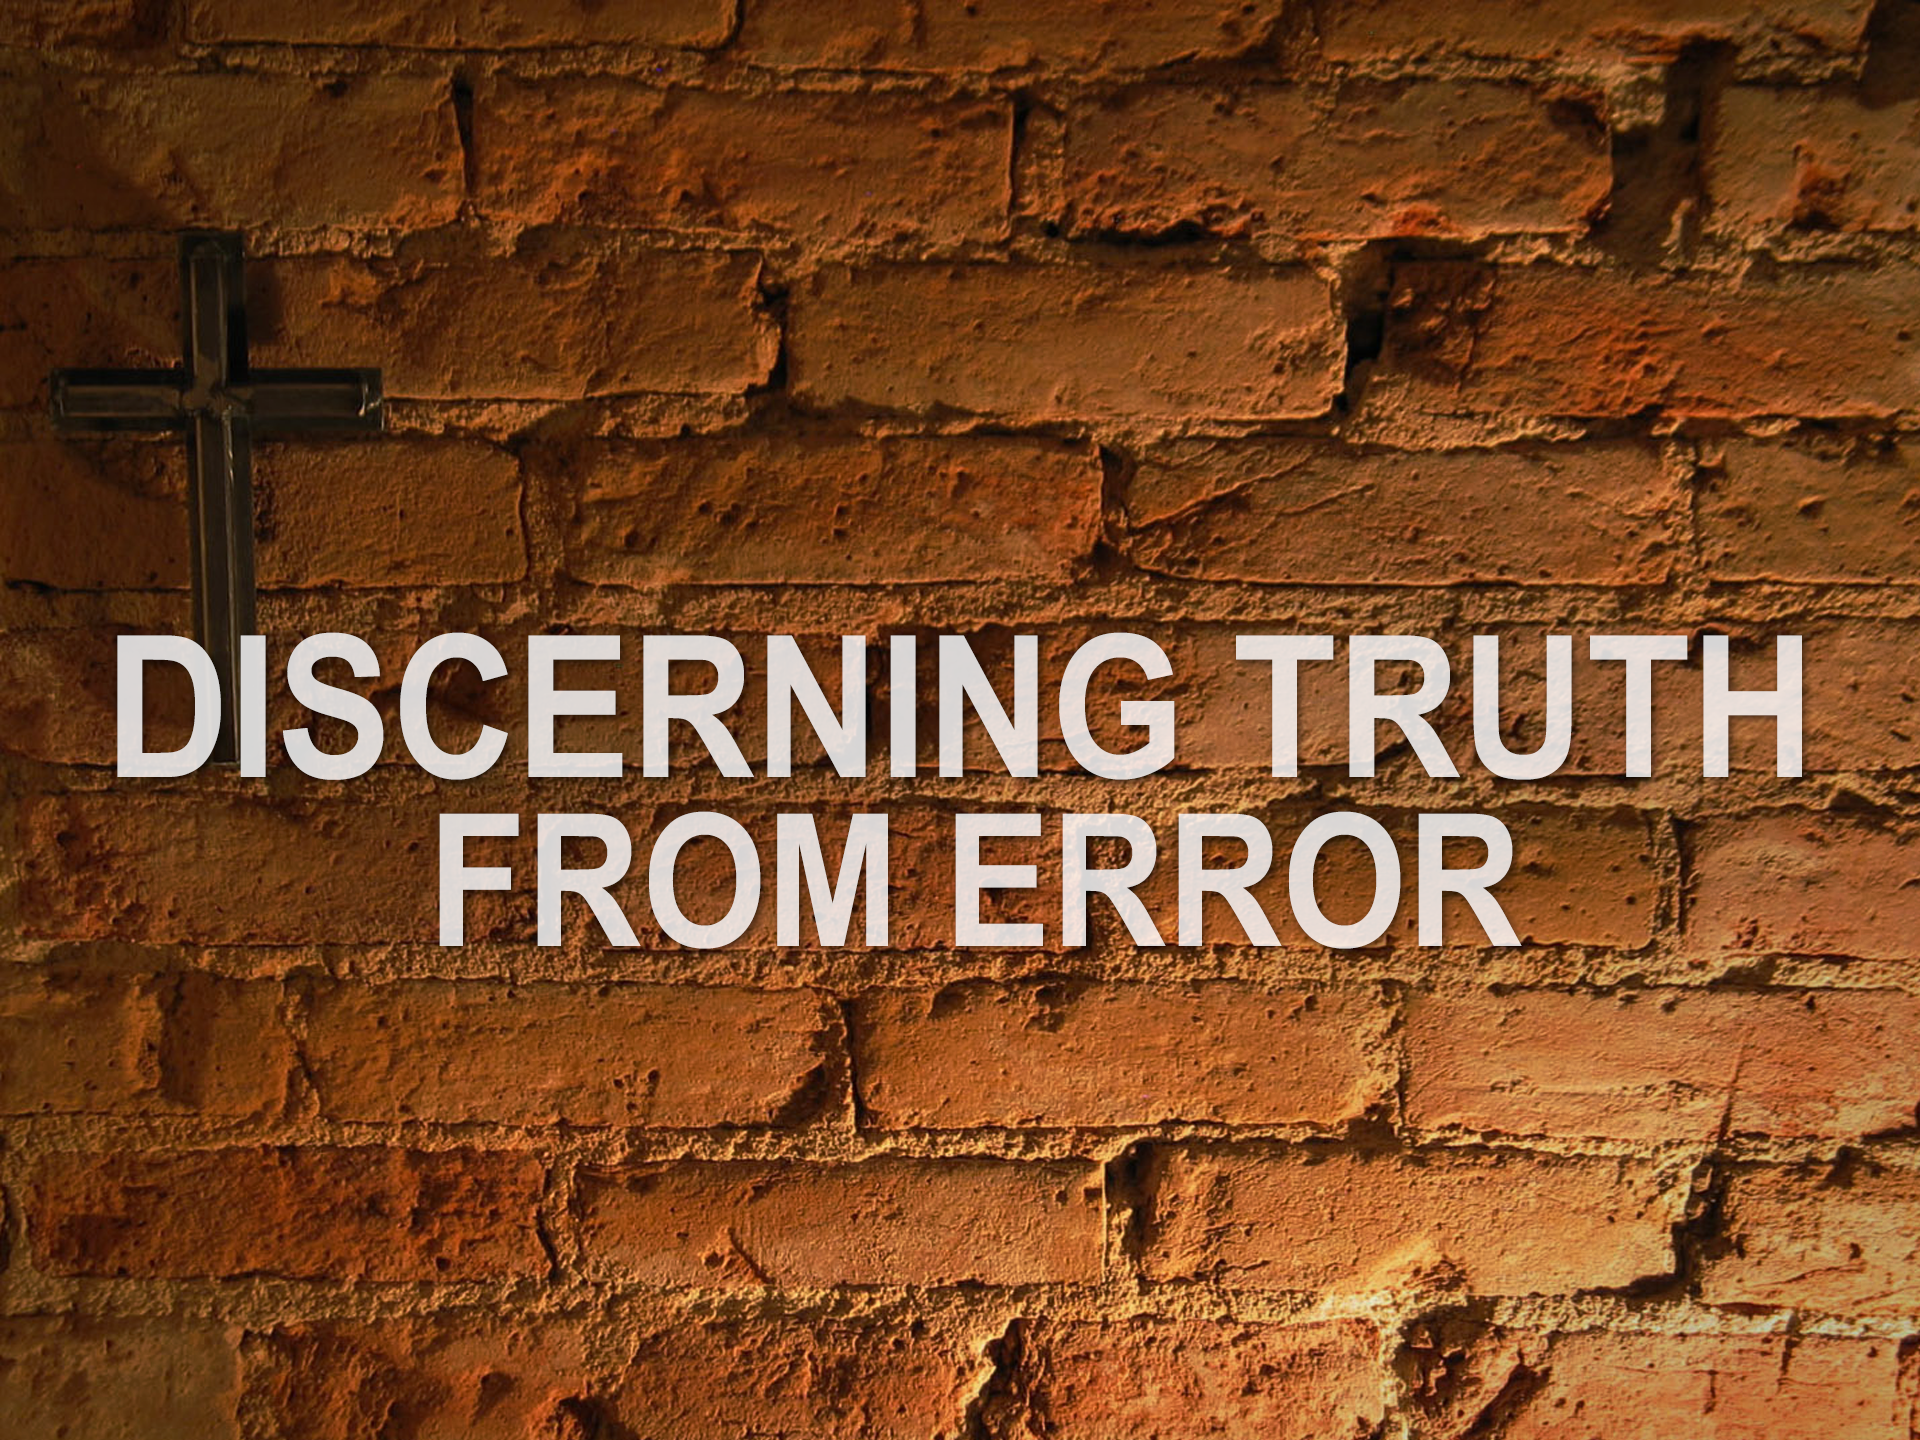 091519 discerning truth from error part 2.png